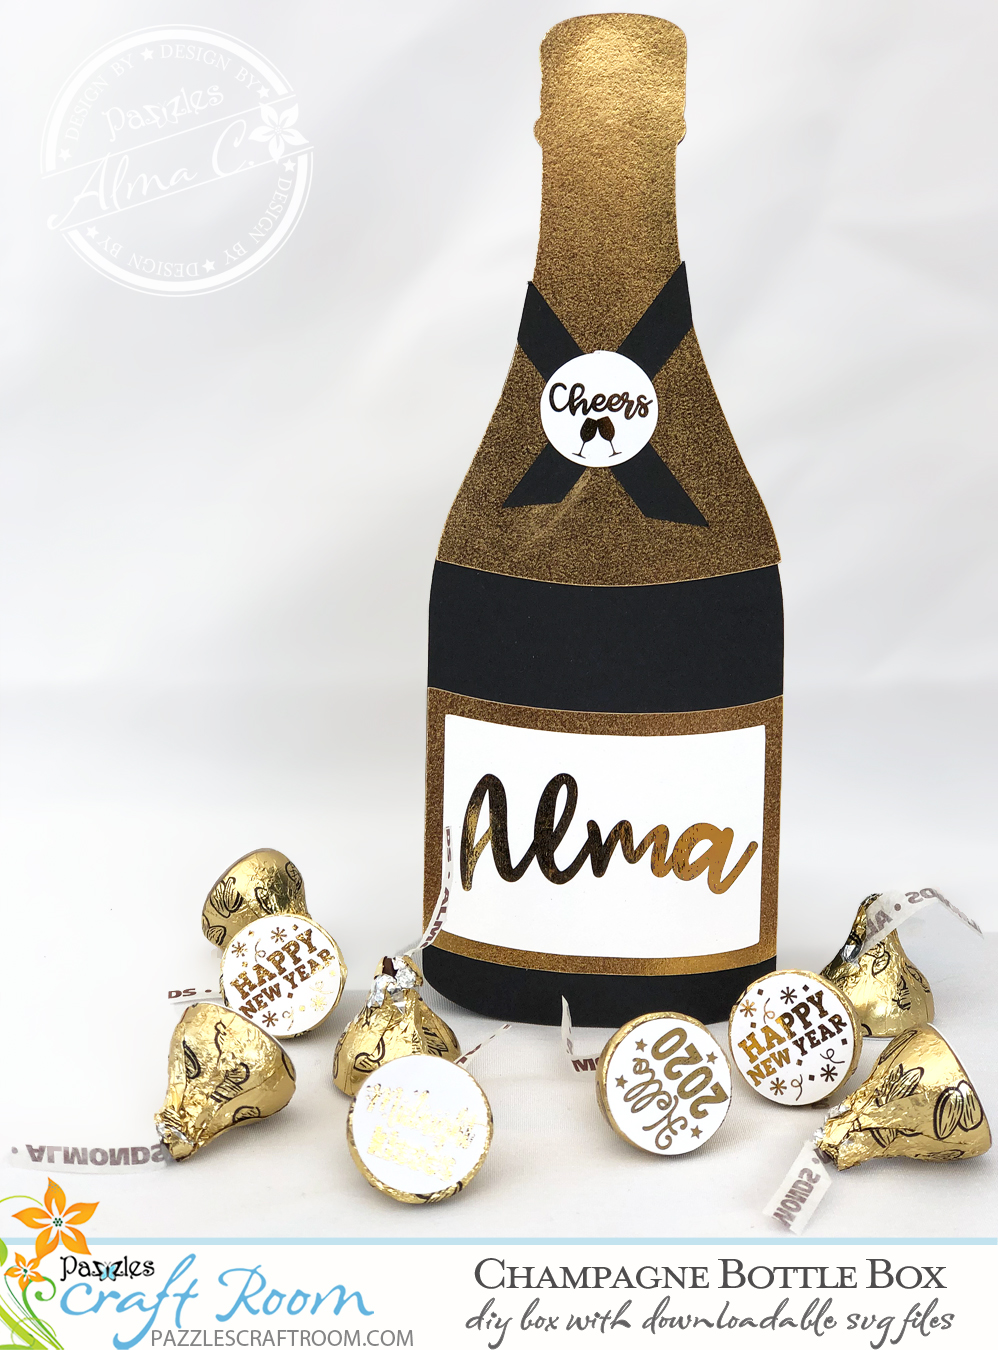 Pazzles DIY Champagne Bottle Box with instant SVG download. Compatible with all major electronic cutters including Pazzles Inspiration, Cricut, and Silhouette Cameo. Design by Alma Cervantes.